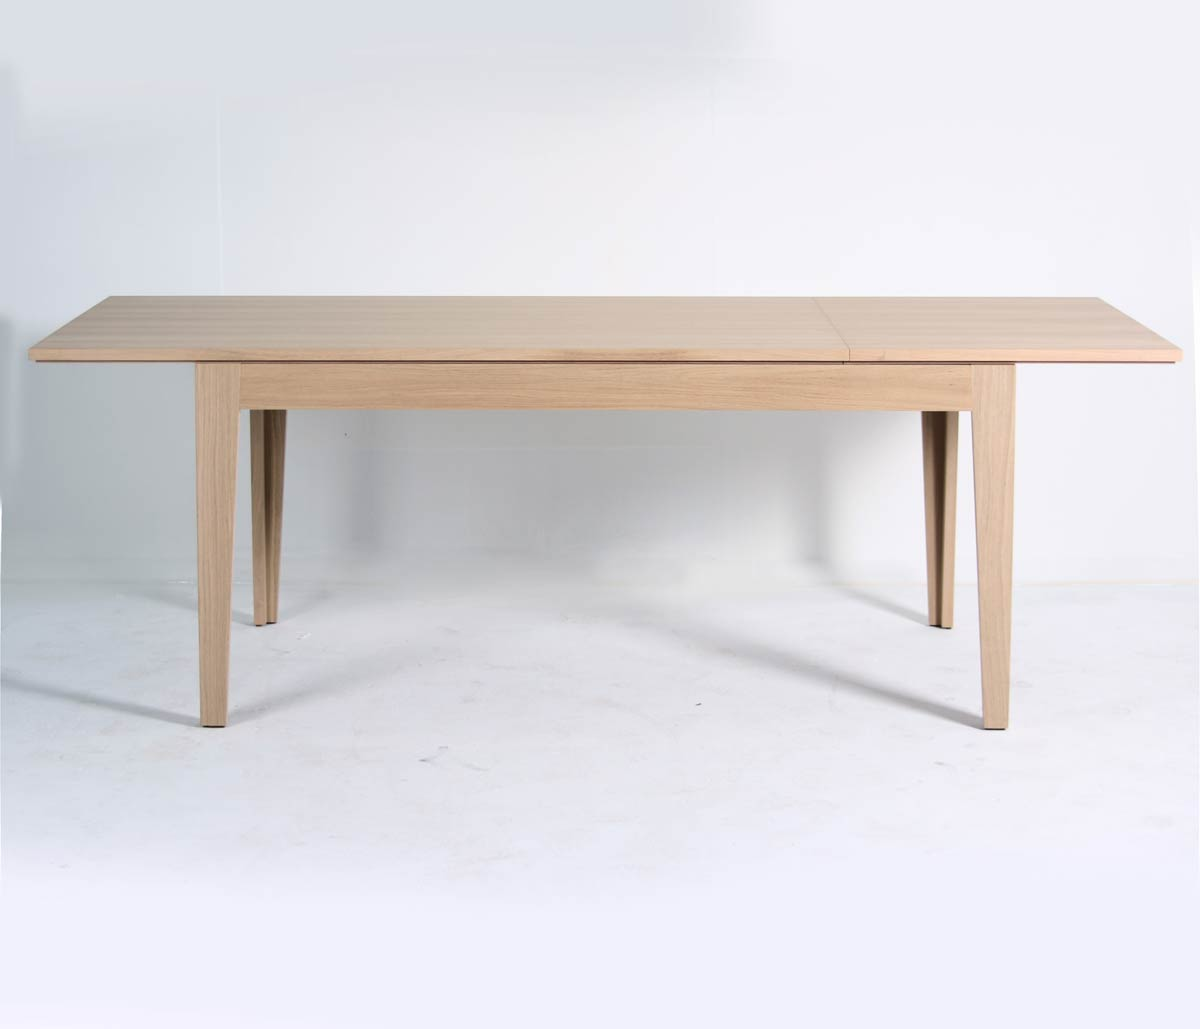 Table bois avec extension ch ne 160 225 cm mighty 5816 for Table a manger 160 cm avec rallonge